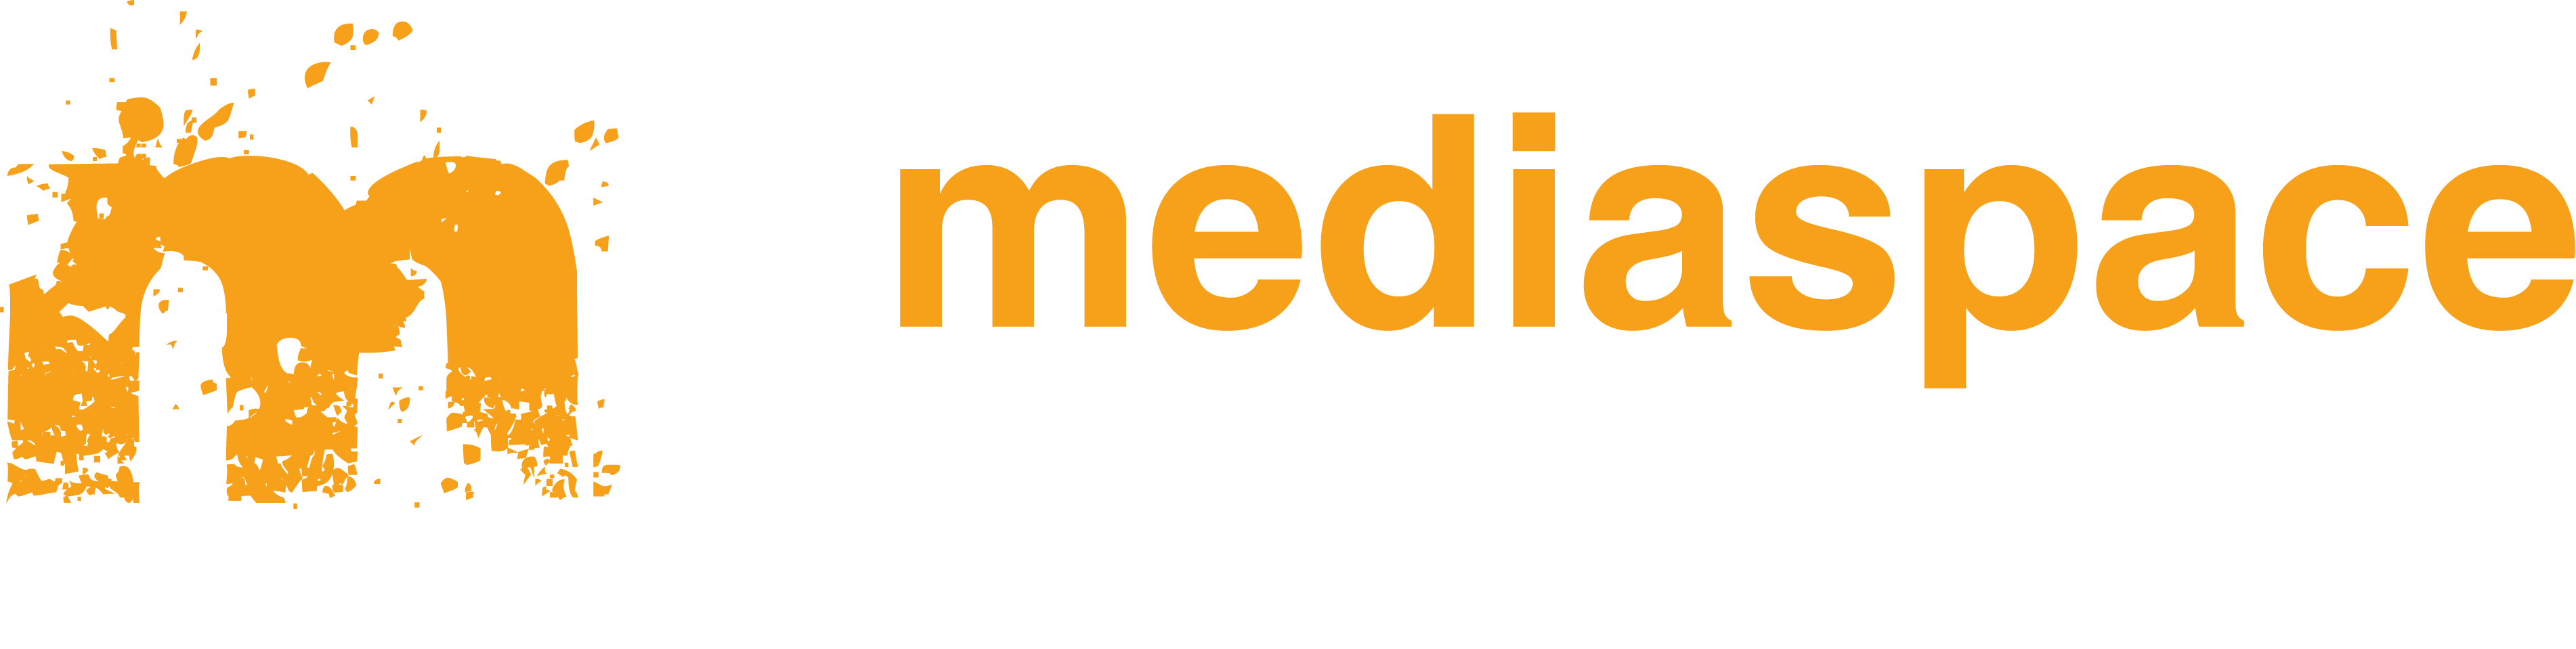 Home Page | Mediaspace Solutions | Minneapolis based full-service